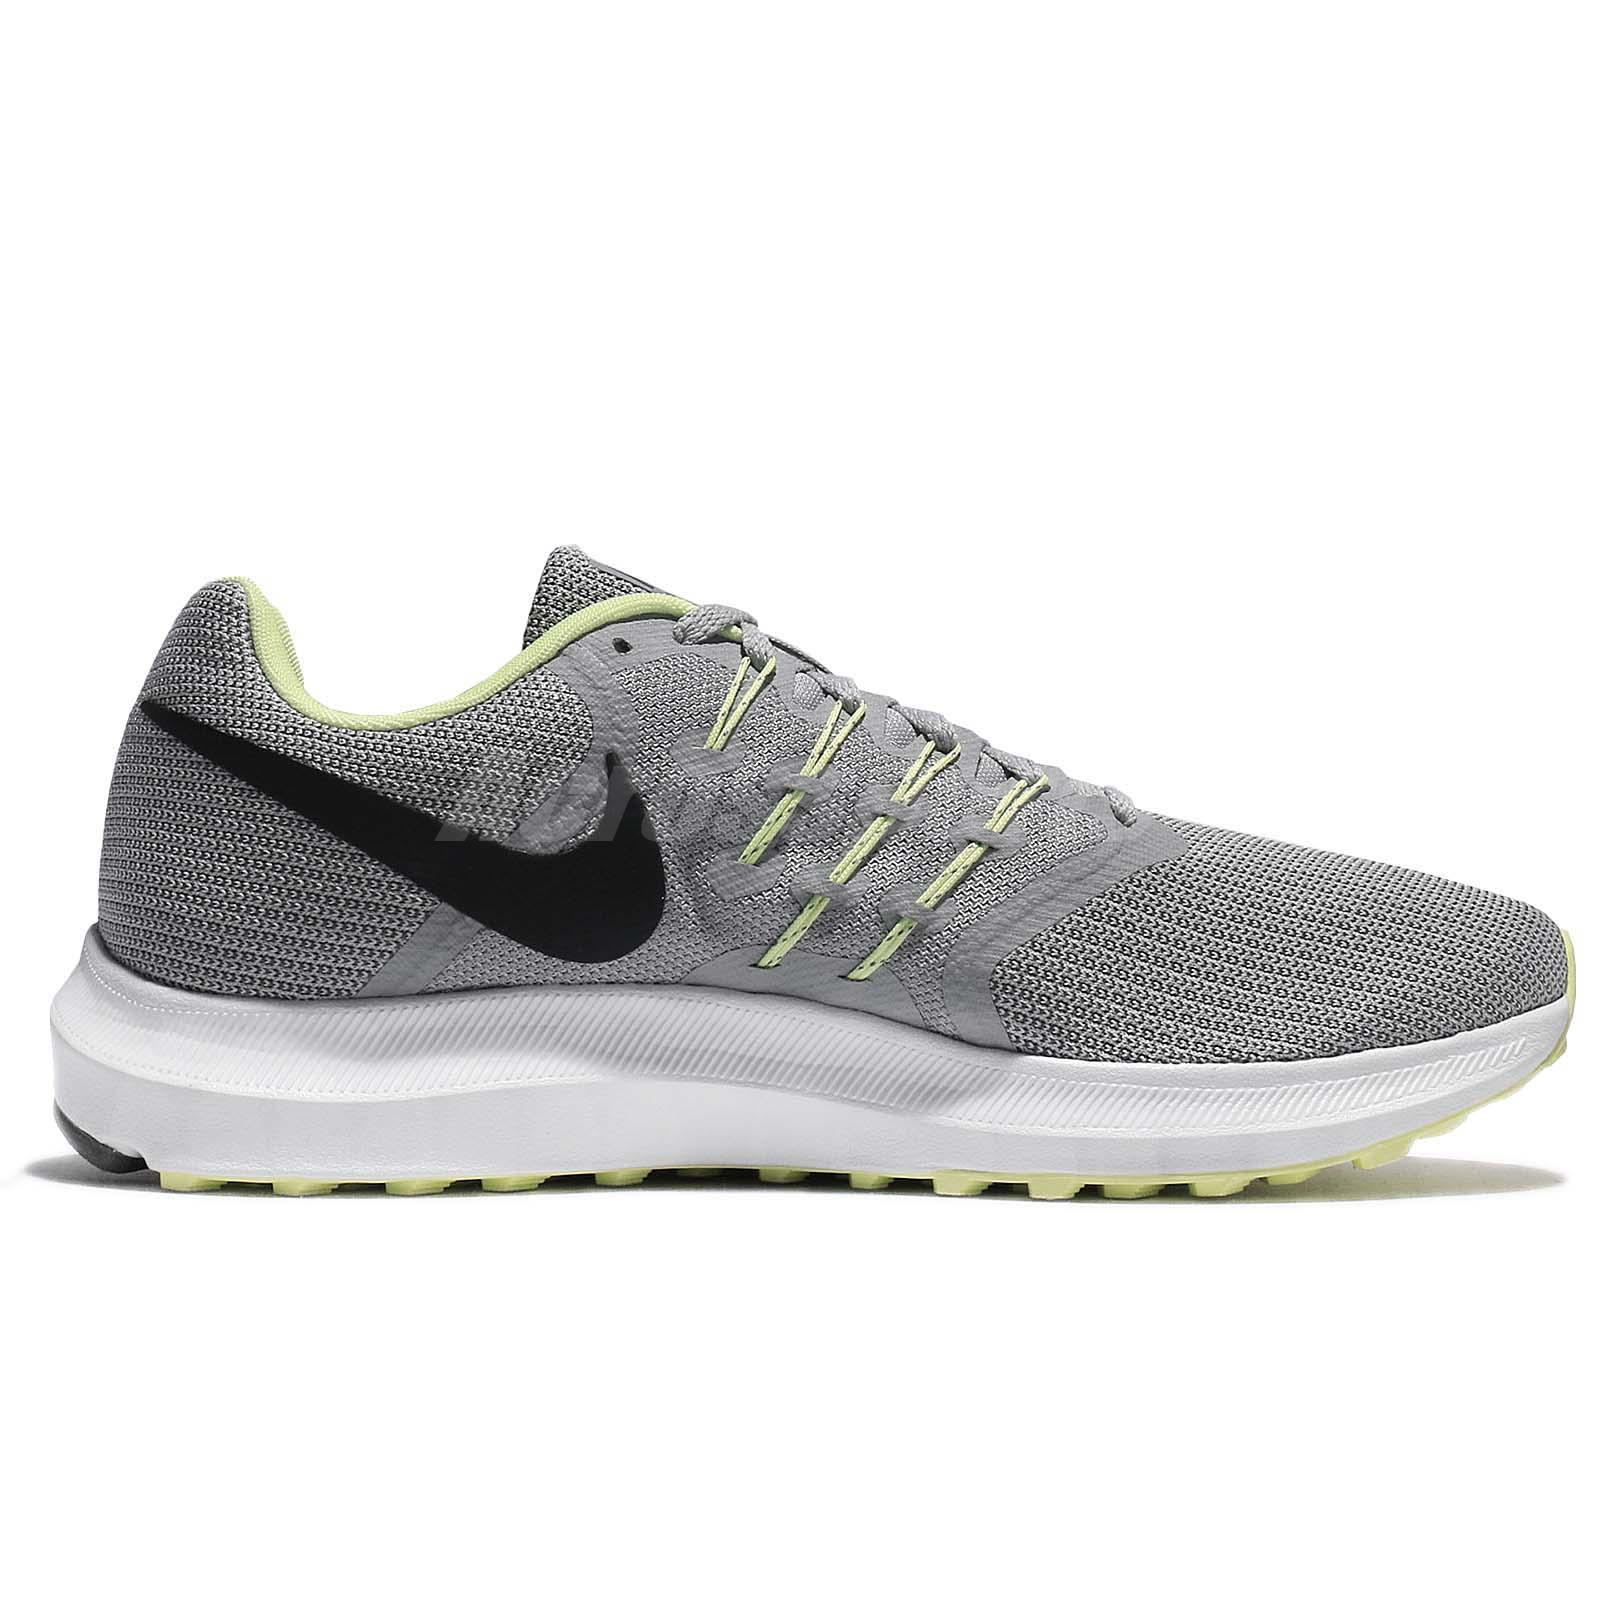 652fbb4735c46 Nike Run Swift Wolf Grey Obsidian Mens Running Shoes Sneakers 908989 ...